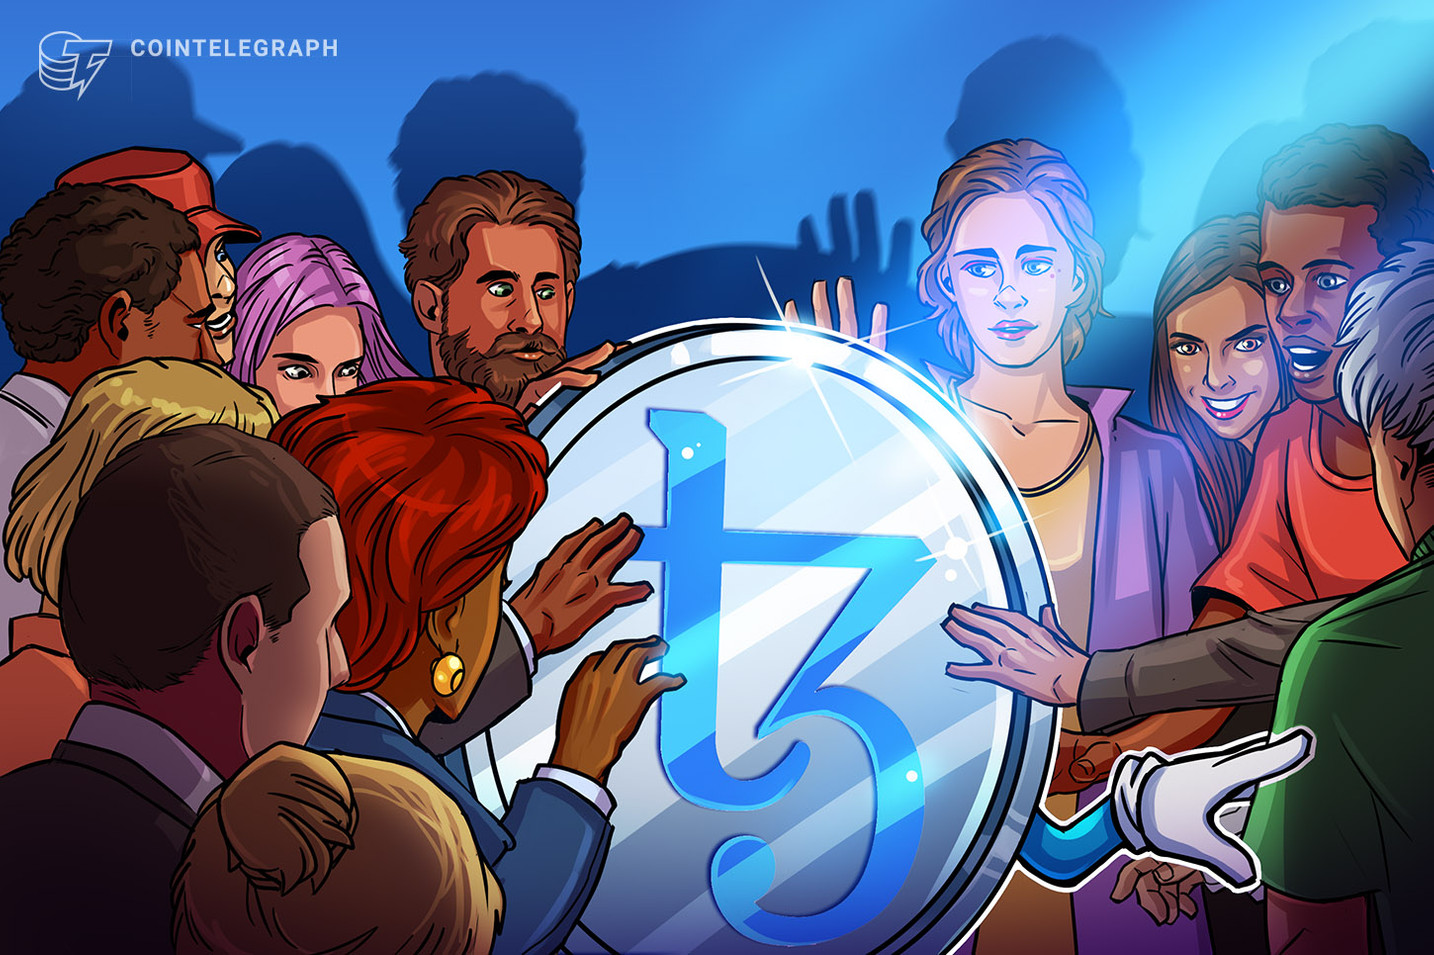 US Investors in Tezos's 2017 ICO May Be Eligible for $25M Settlement